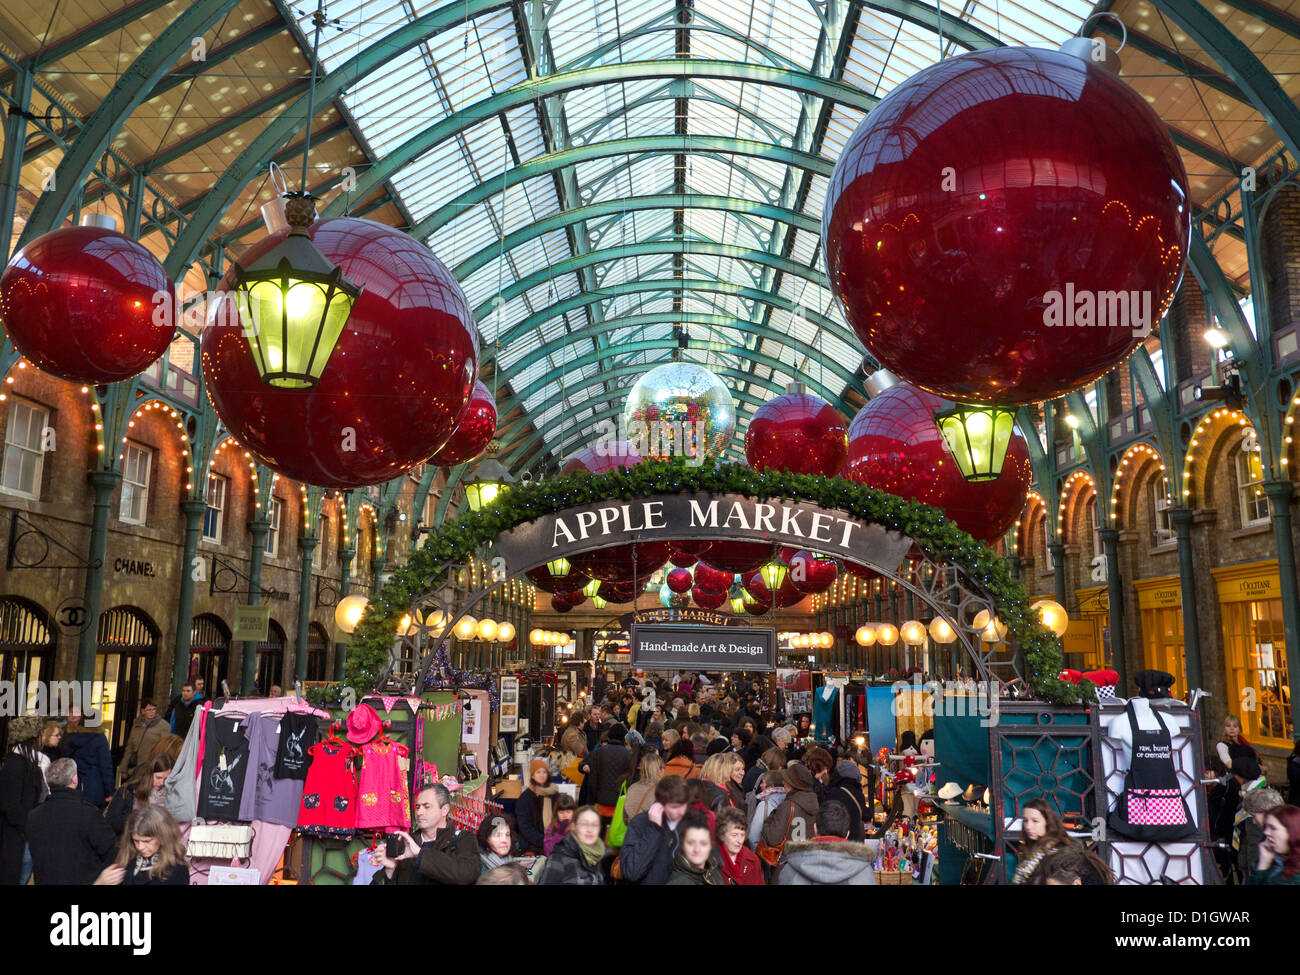 Apple Id Reset Email >> The Apple Market Hall at Covent Garden with Christmas decorations Stock Photo: 52616895 - Alamy